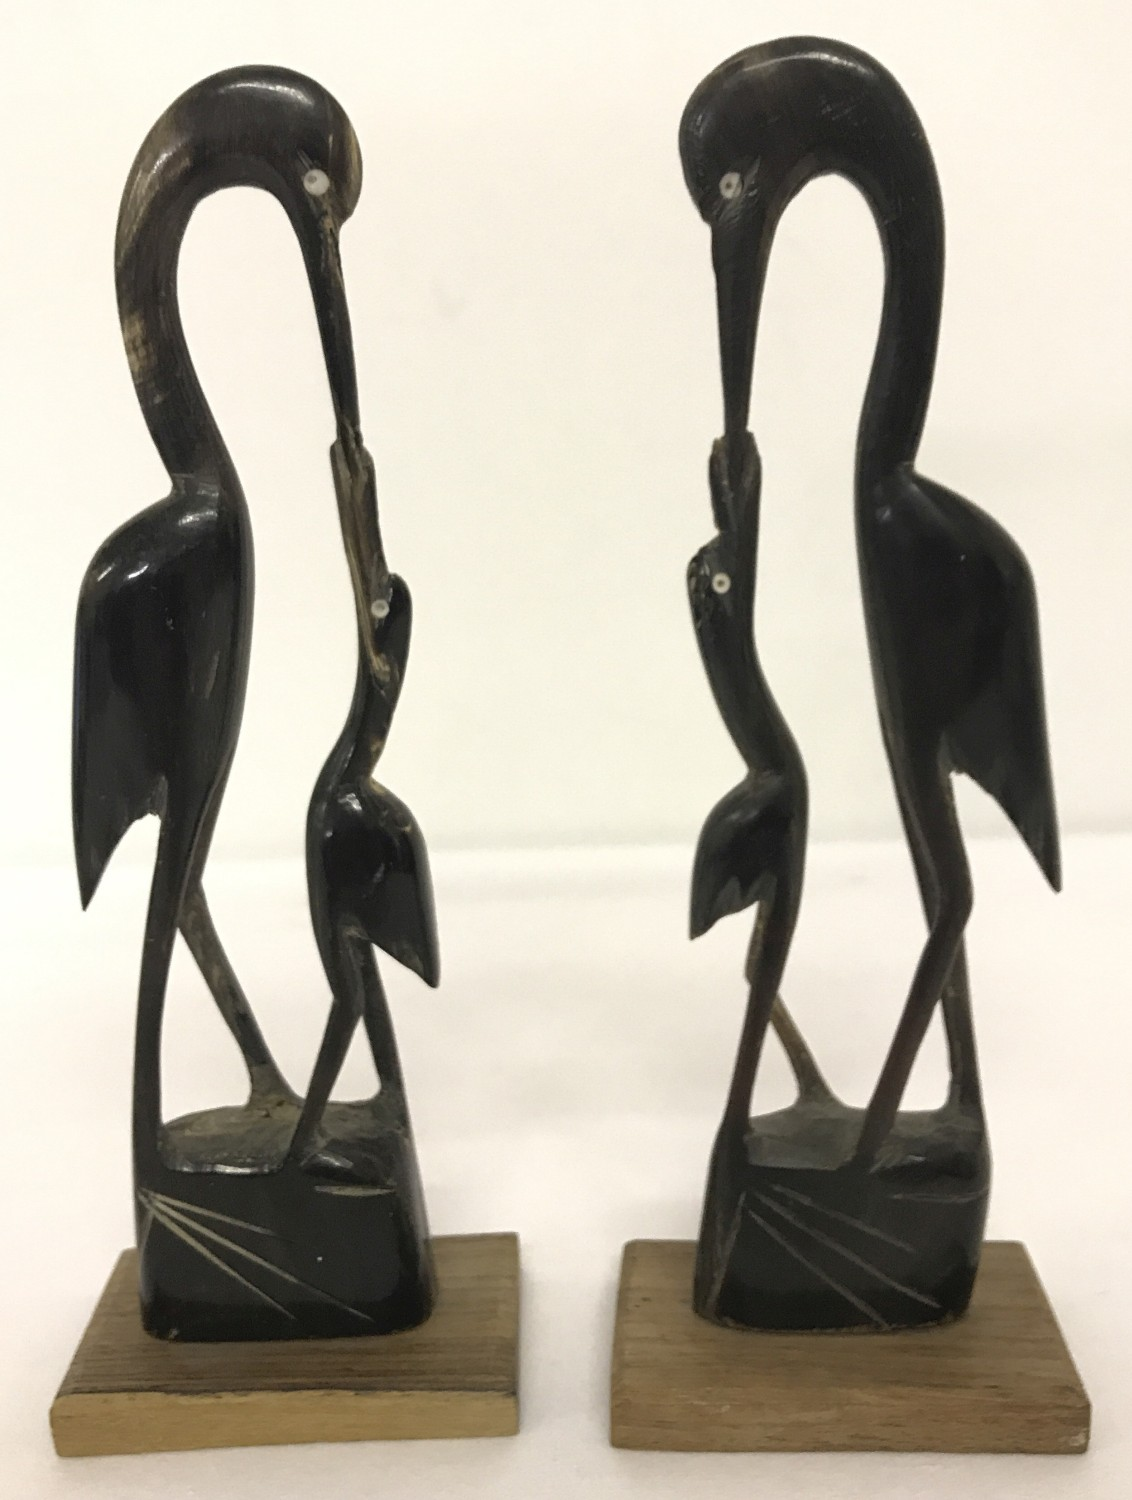 A pair of Indian carved horn figurines of stalks on wooden plinths.